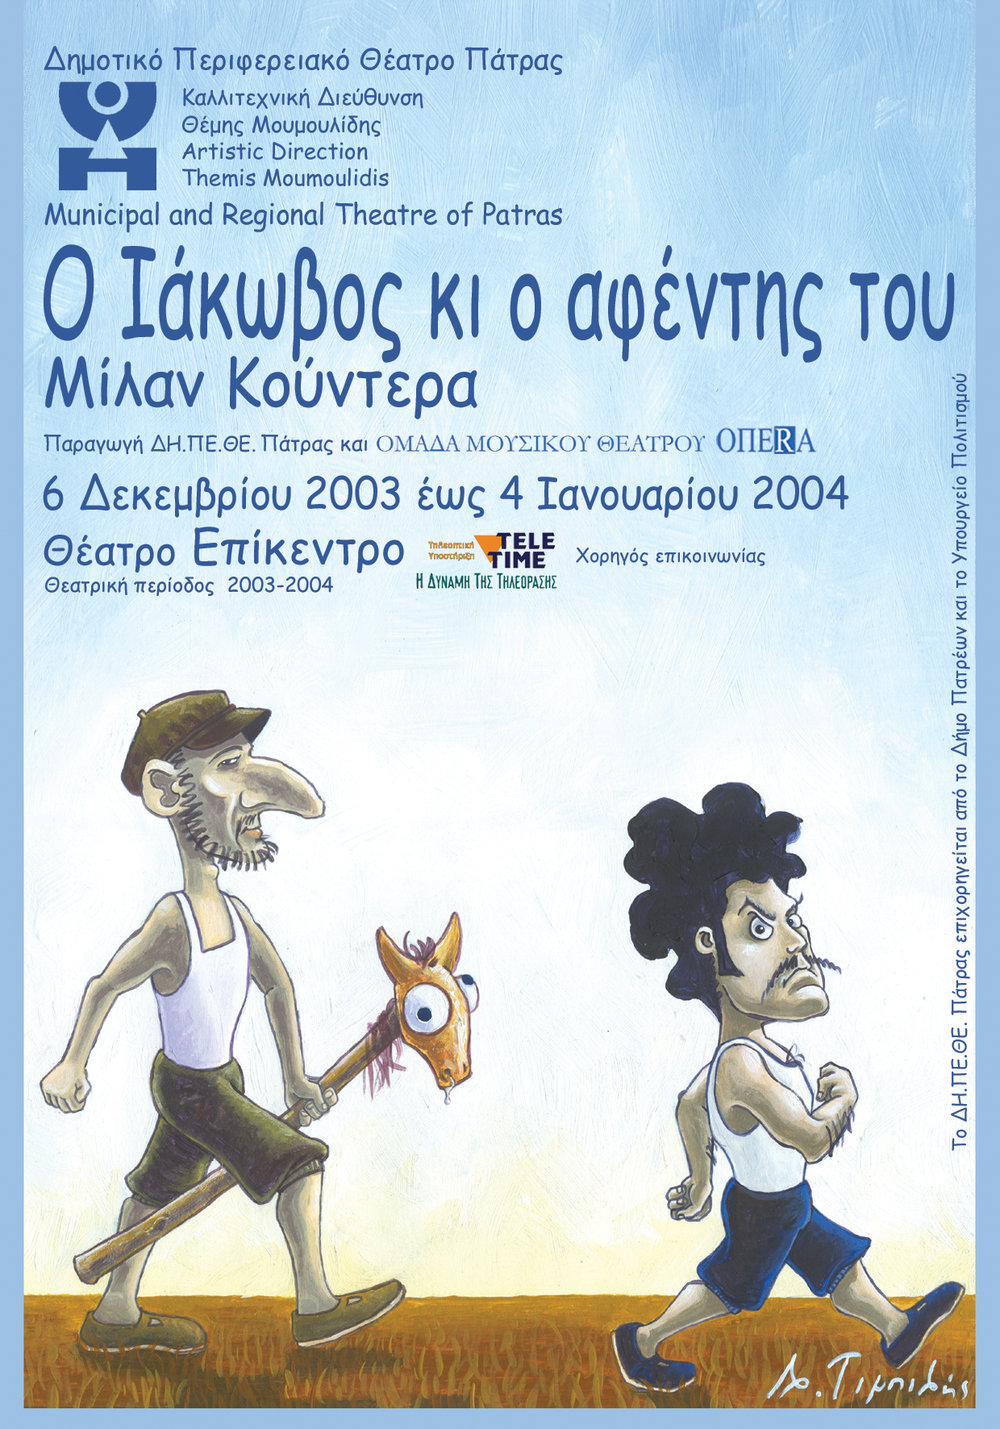 2003 Jacques and his Master by Milan Kundera Flyer Front.jpg